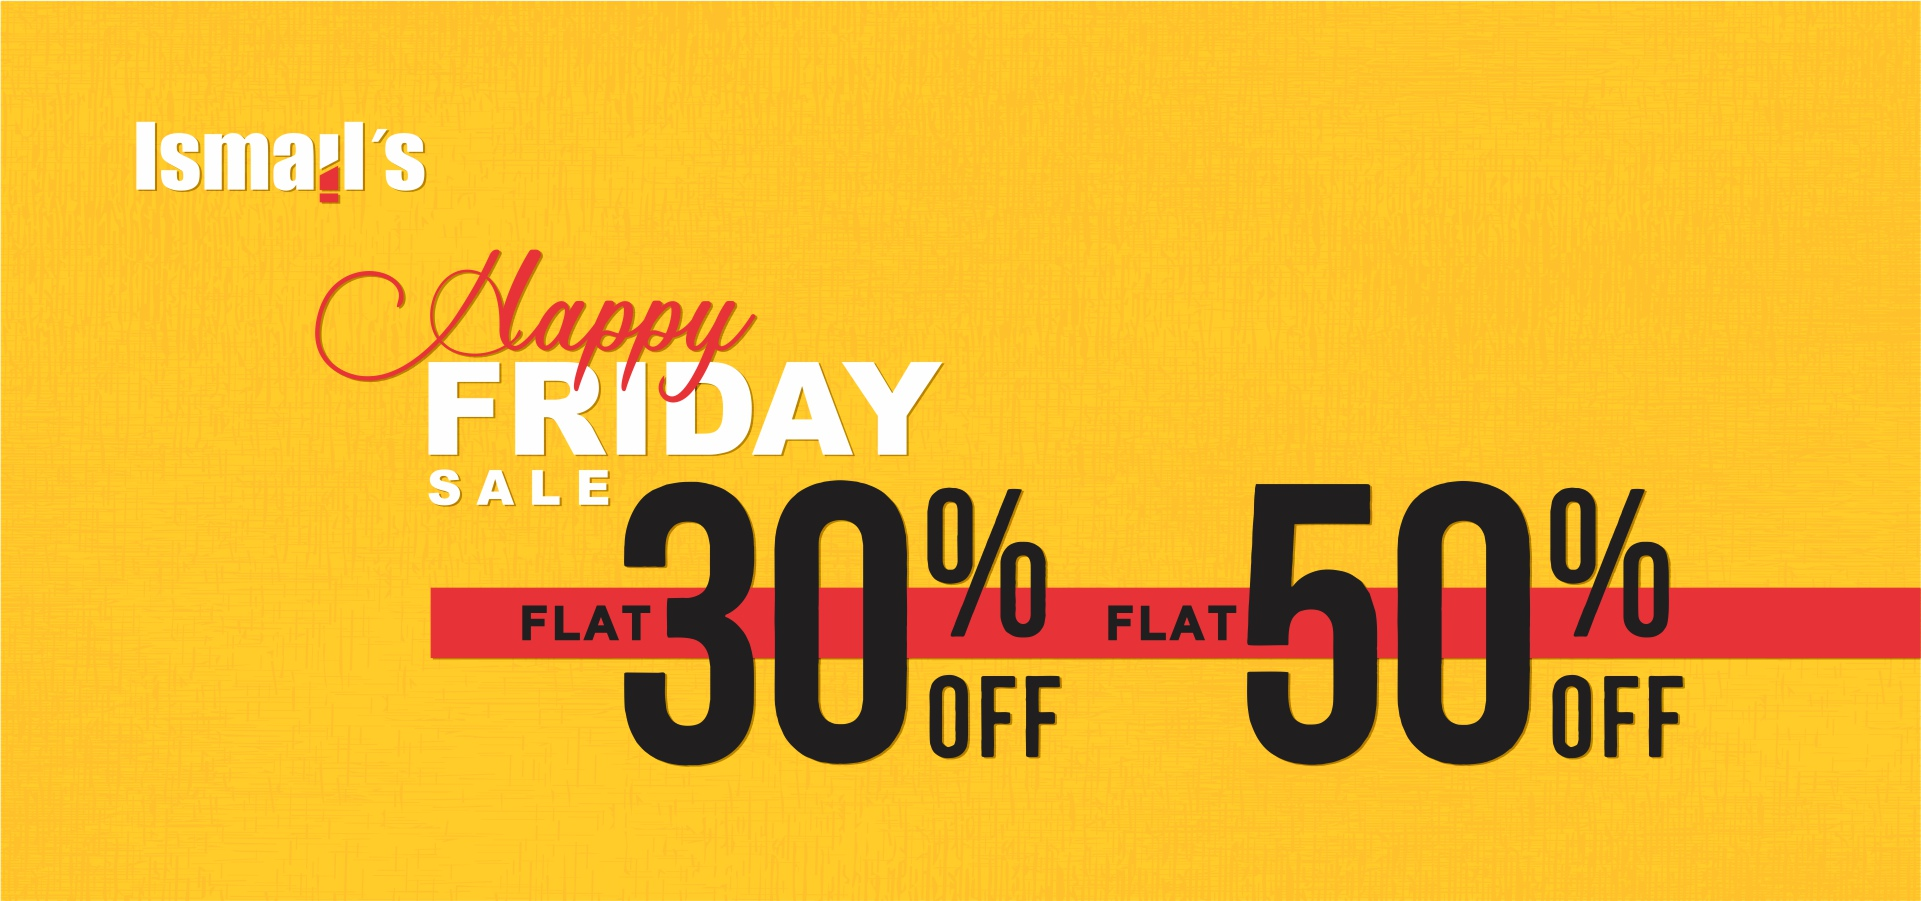 Ismail's - Happy Friday Sale